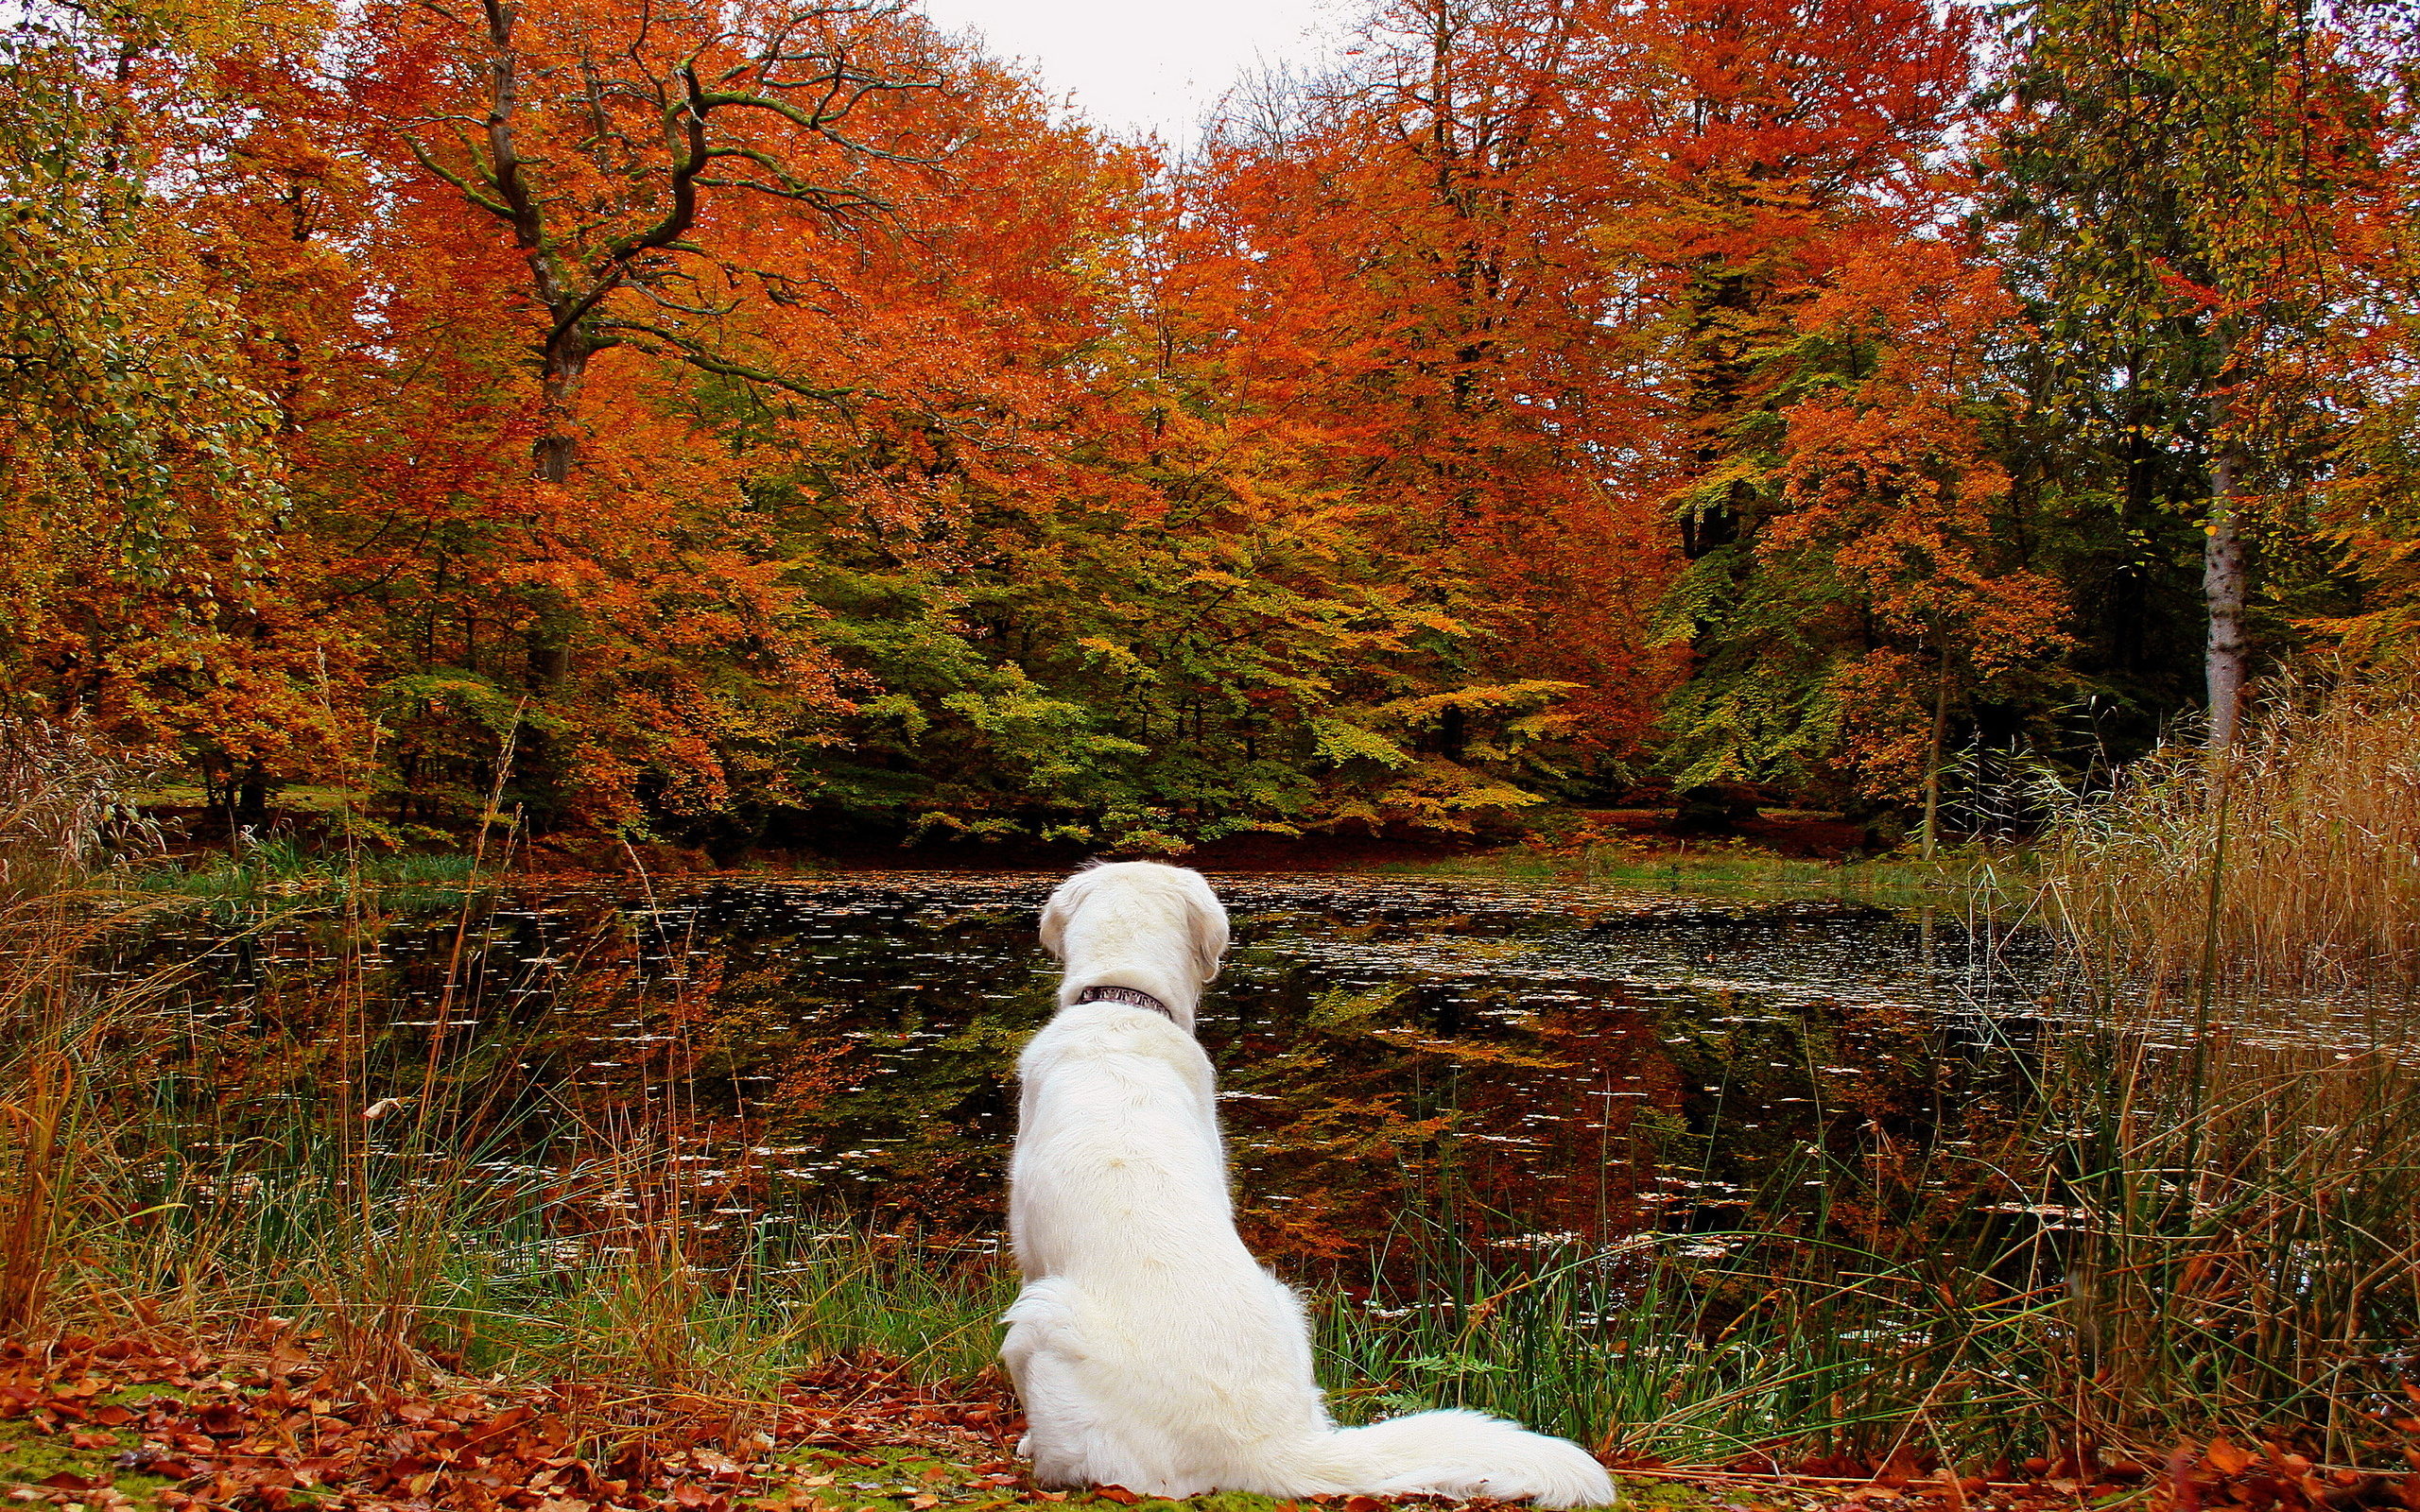 Free Computer Wallpaper Fall Leaves Lake Leaves Autumn Dog Forest F Wallpaper 2560x1600